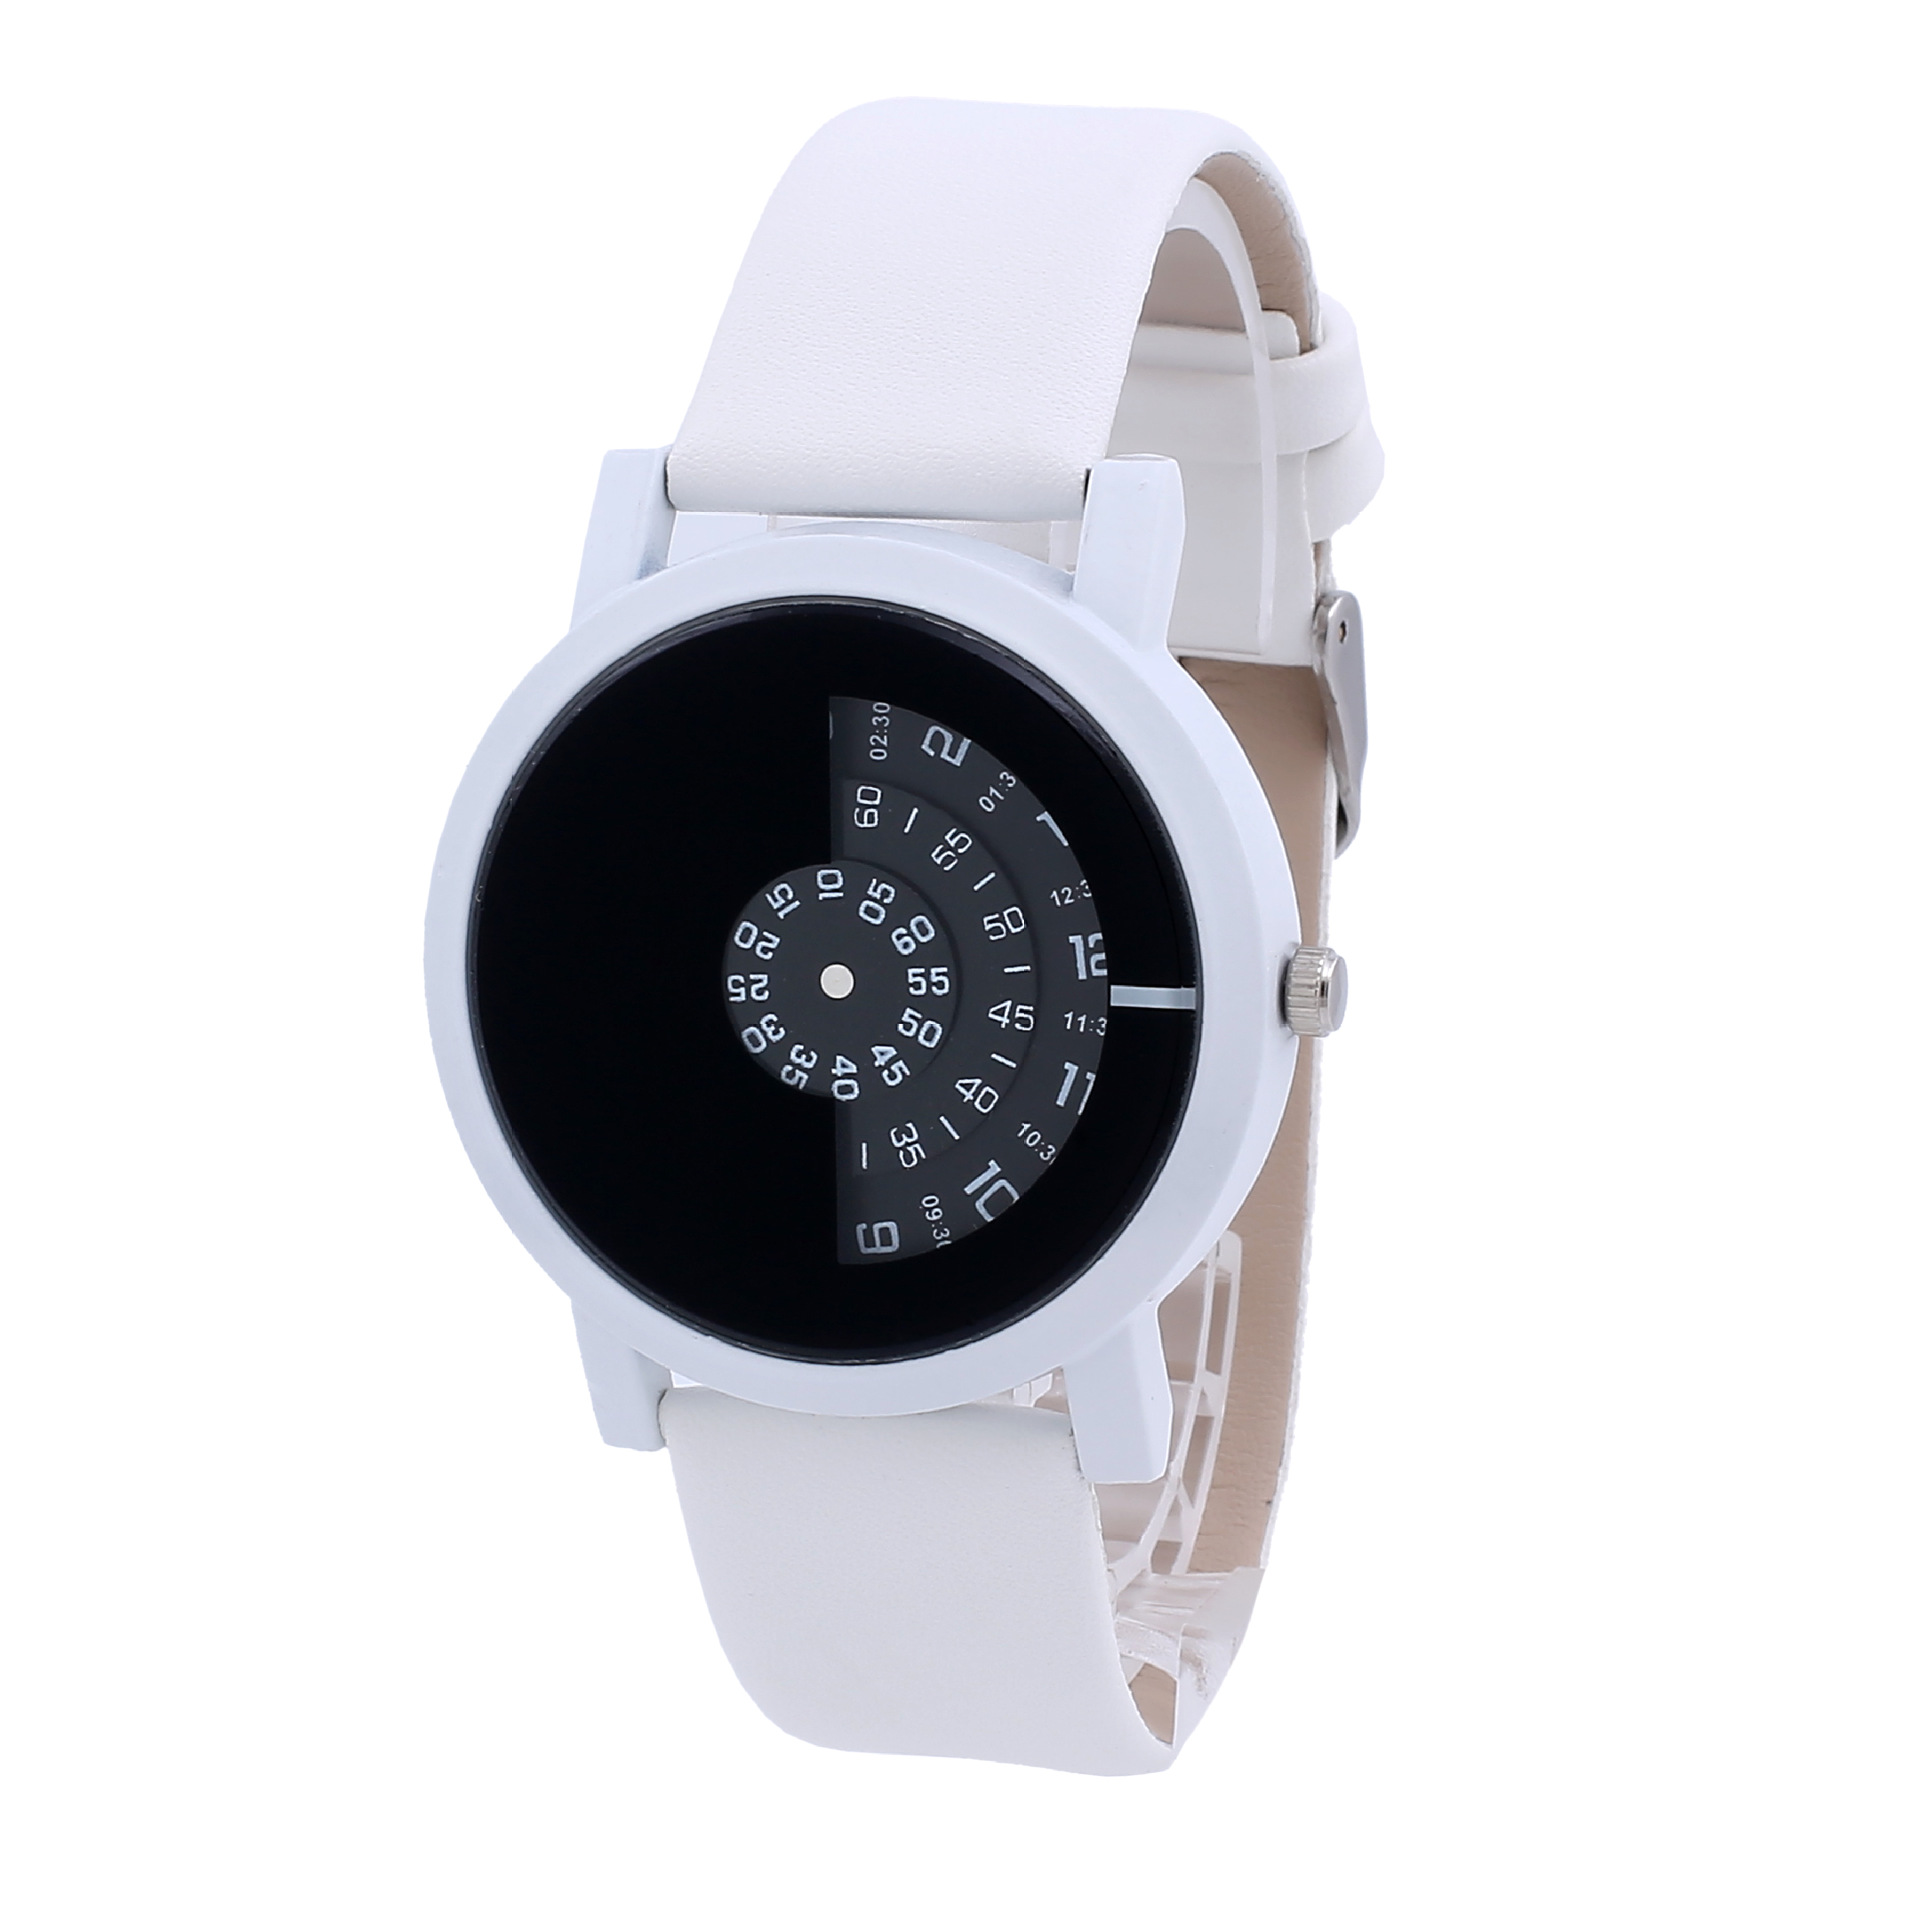 second sport make watch week by every digital winter p fashion watches mettallic sportech series count unisex